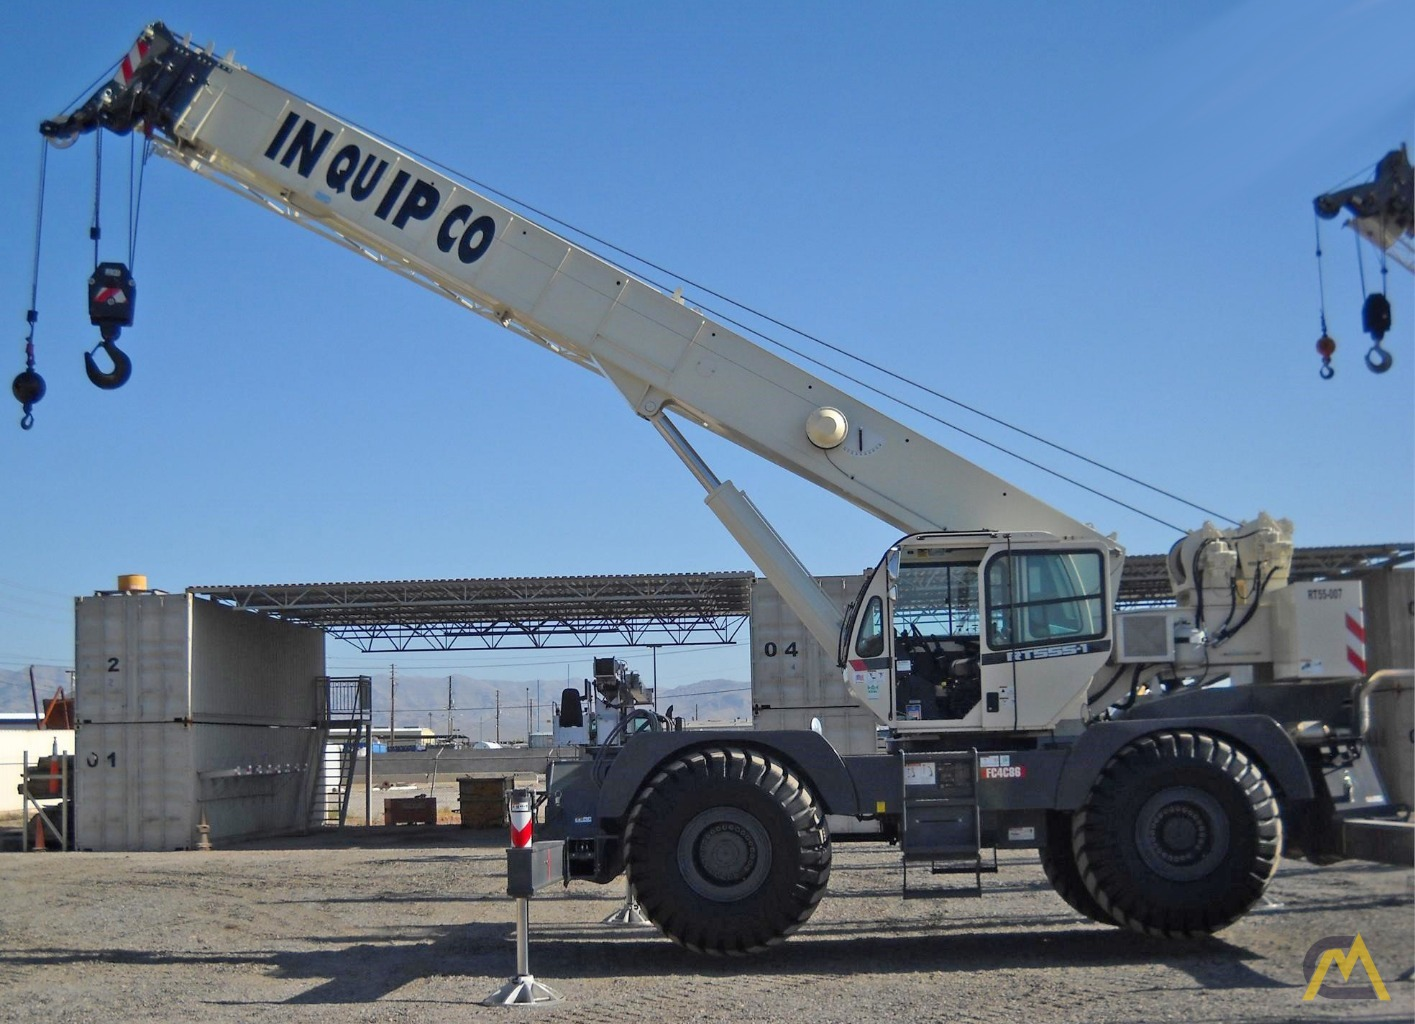 55t Terex Rt555 1 Rough Terrain Crane For Sale Or Rent Material Wiring Diagrams 0